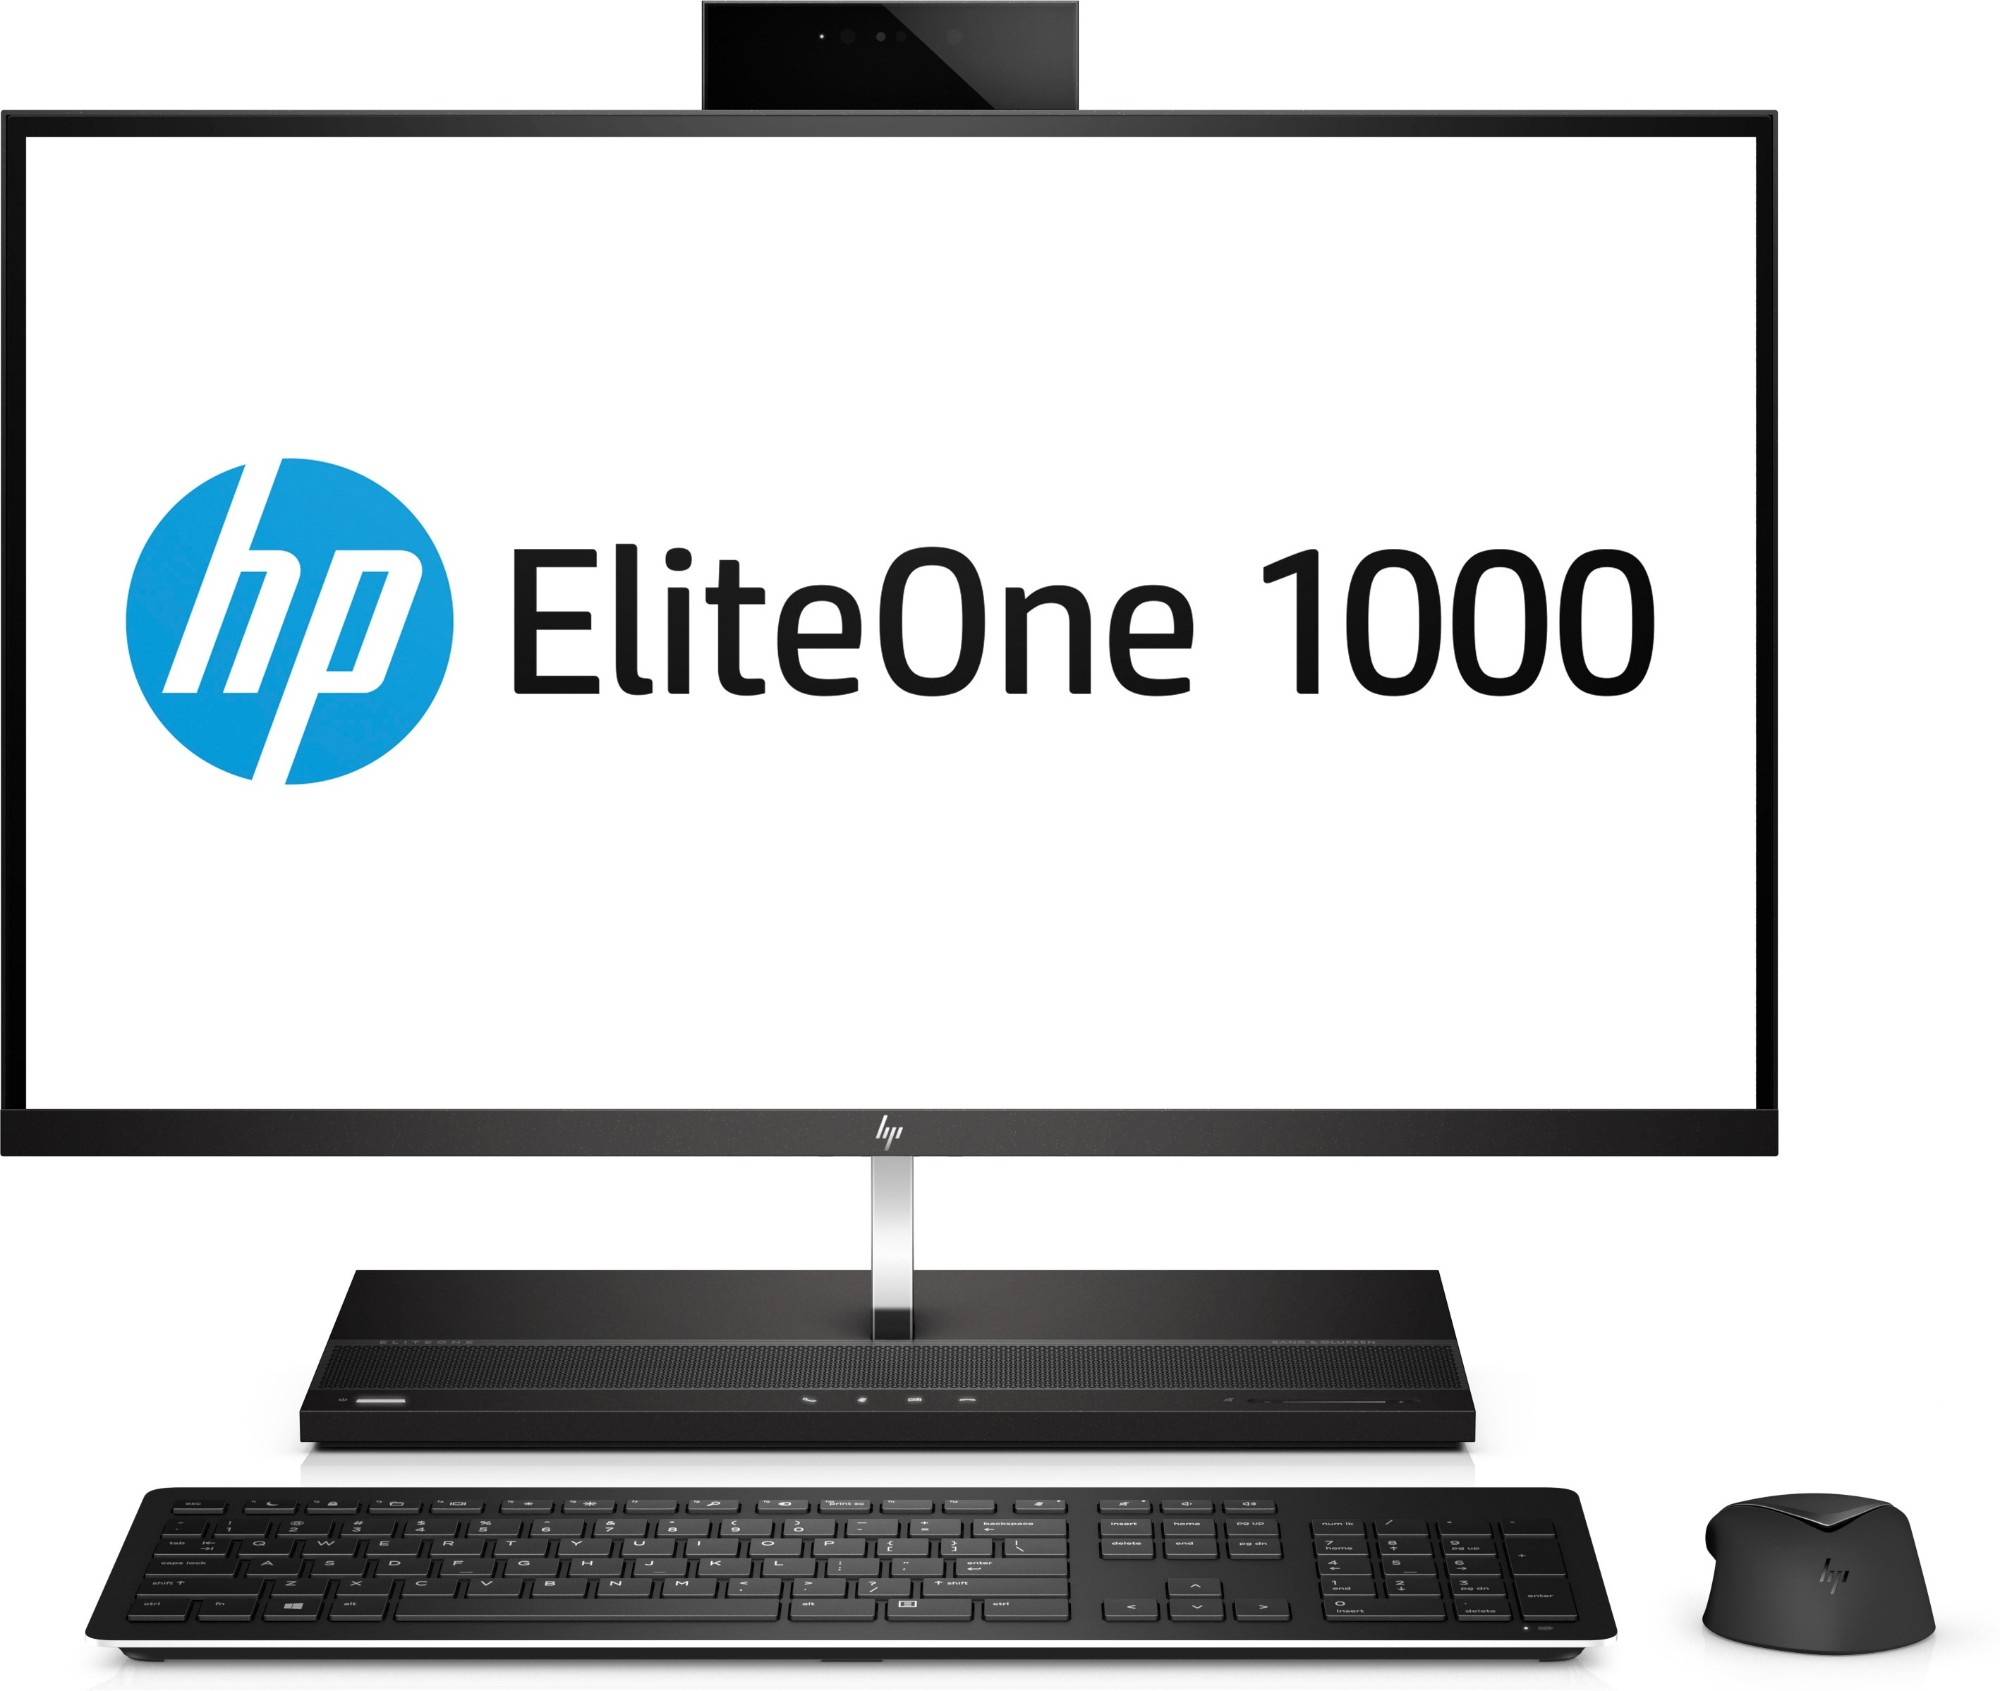 """HP EliteOne 1000 G1 3.6GHz i7-7700 27"""" 3840 x 2160pixels Touchscreen Black, Silver All-in-One PC"""